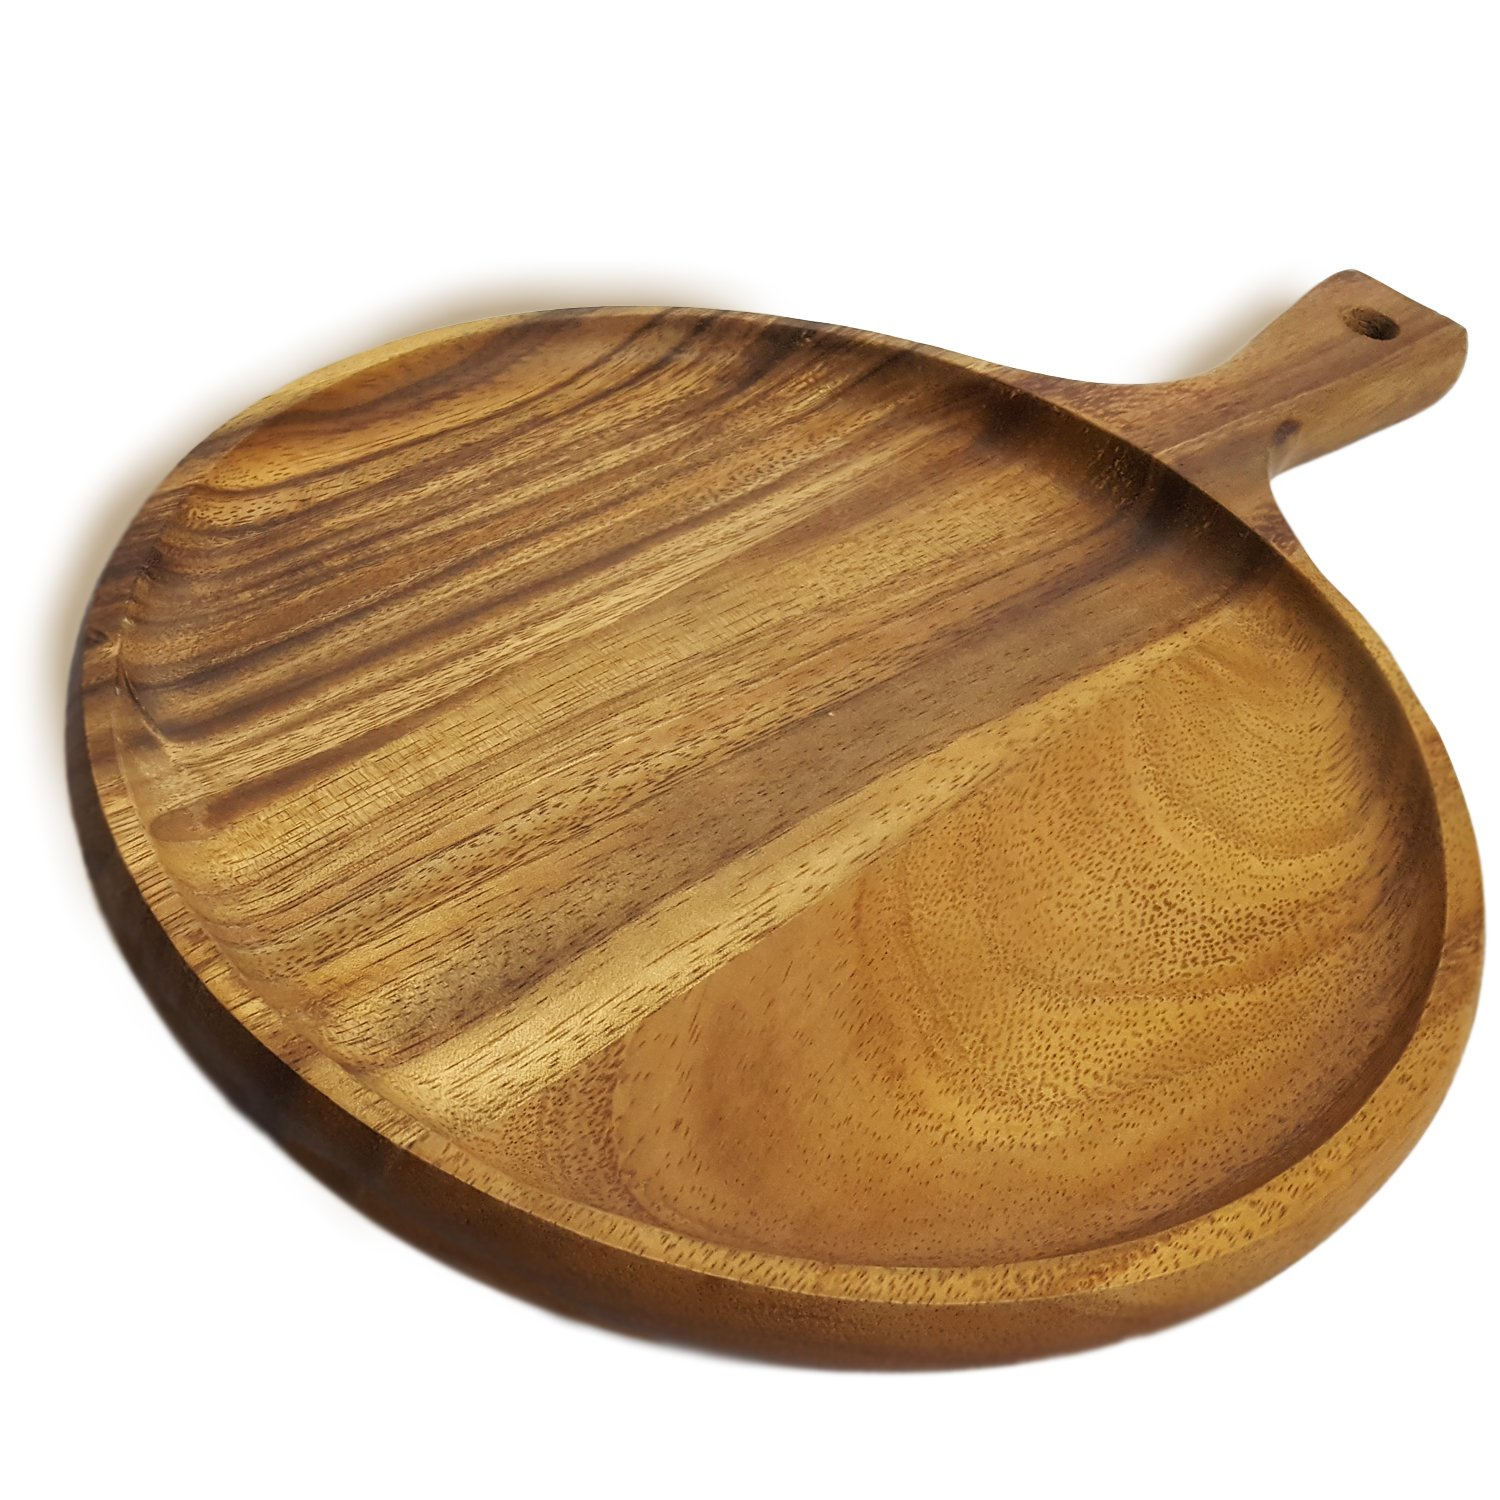 RoRo Acacia Wood Round Tray for Small Pizzas and Appetizers, 14 x 10 Inch